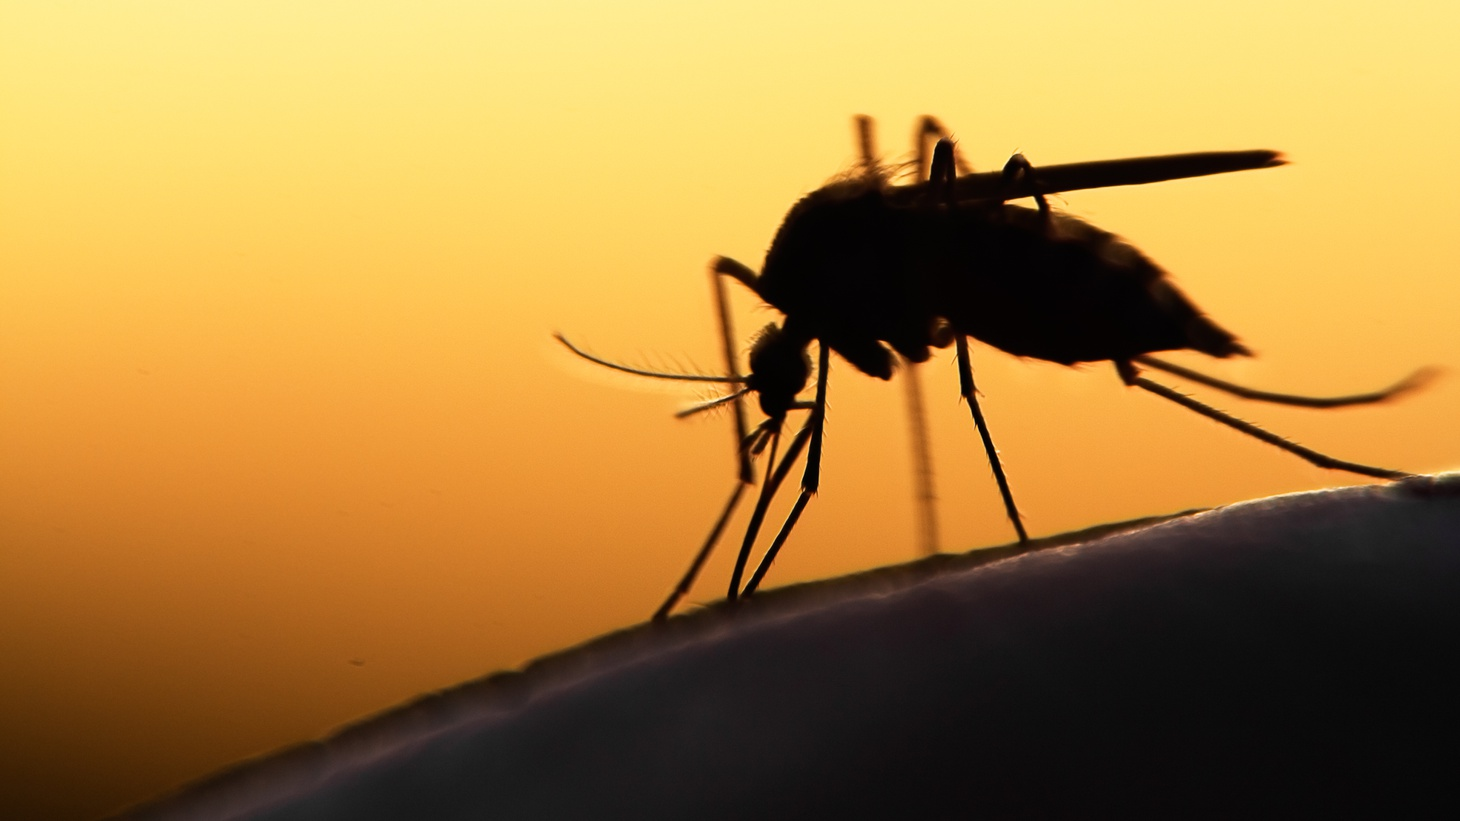 So far, 26 samples of West Nile virus have been found in LA mosquitos.